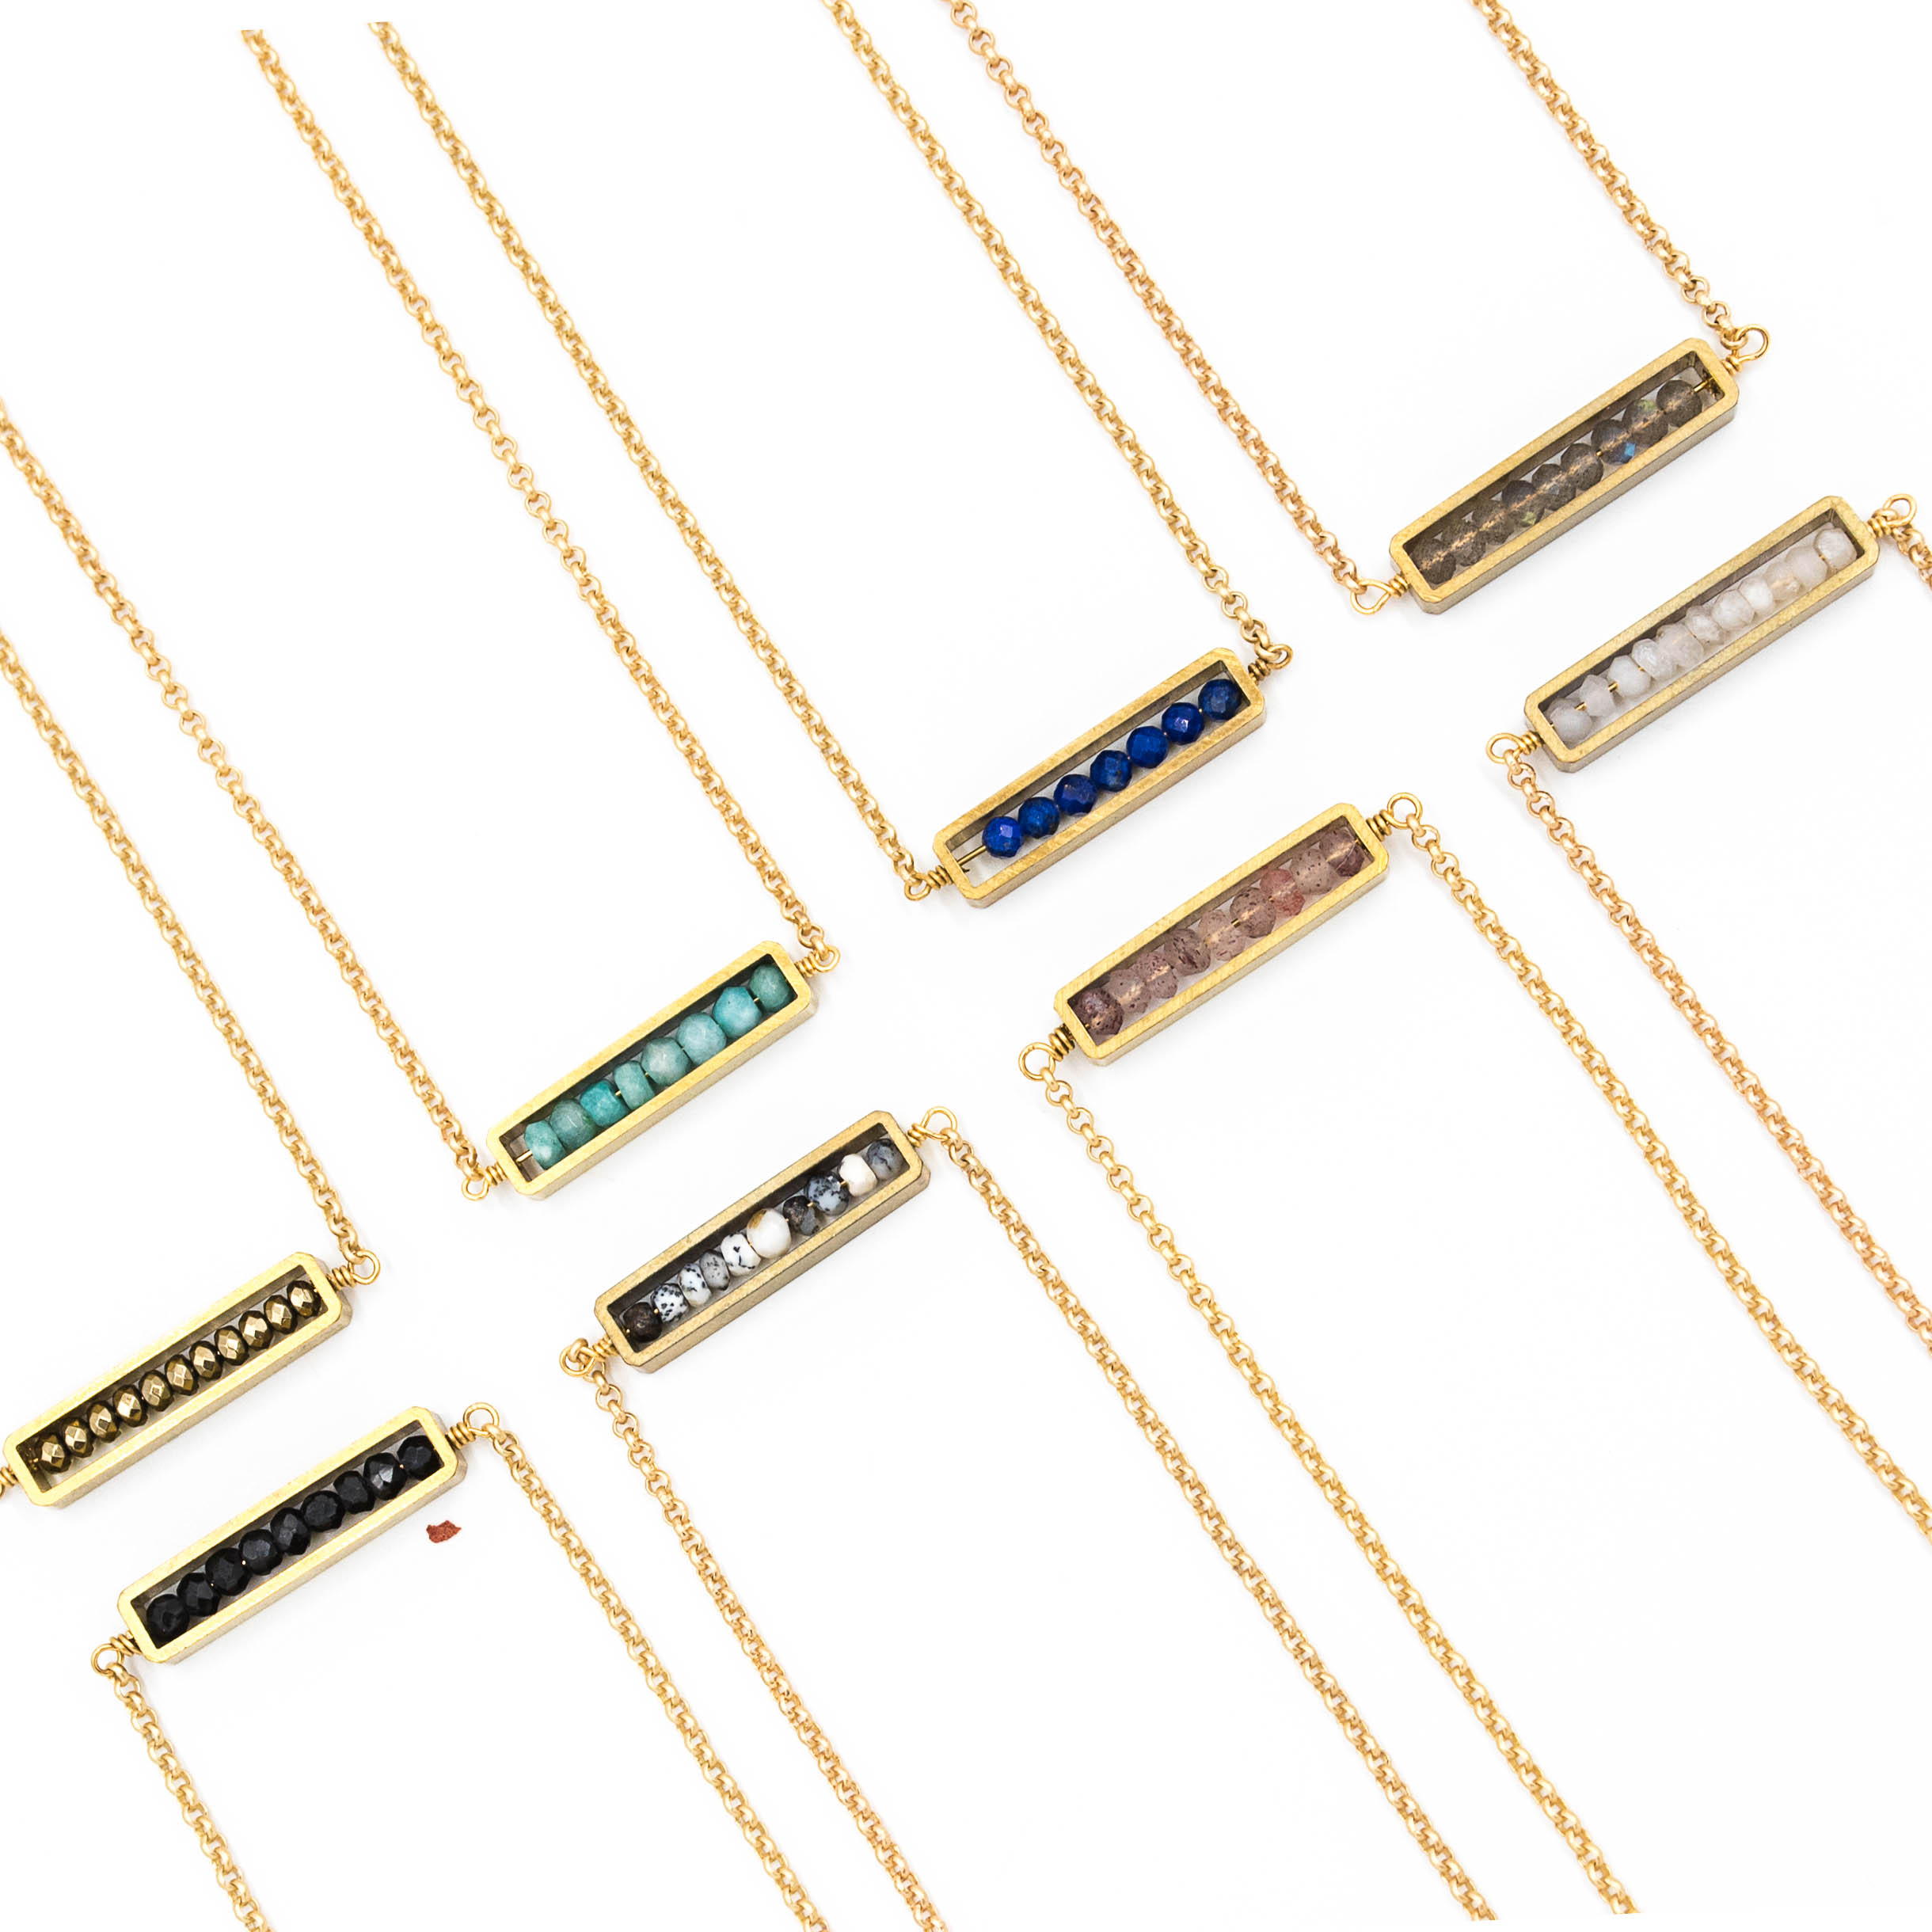 NC505 - Abacus Necklace All Variants.jpg